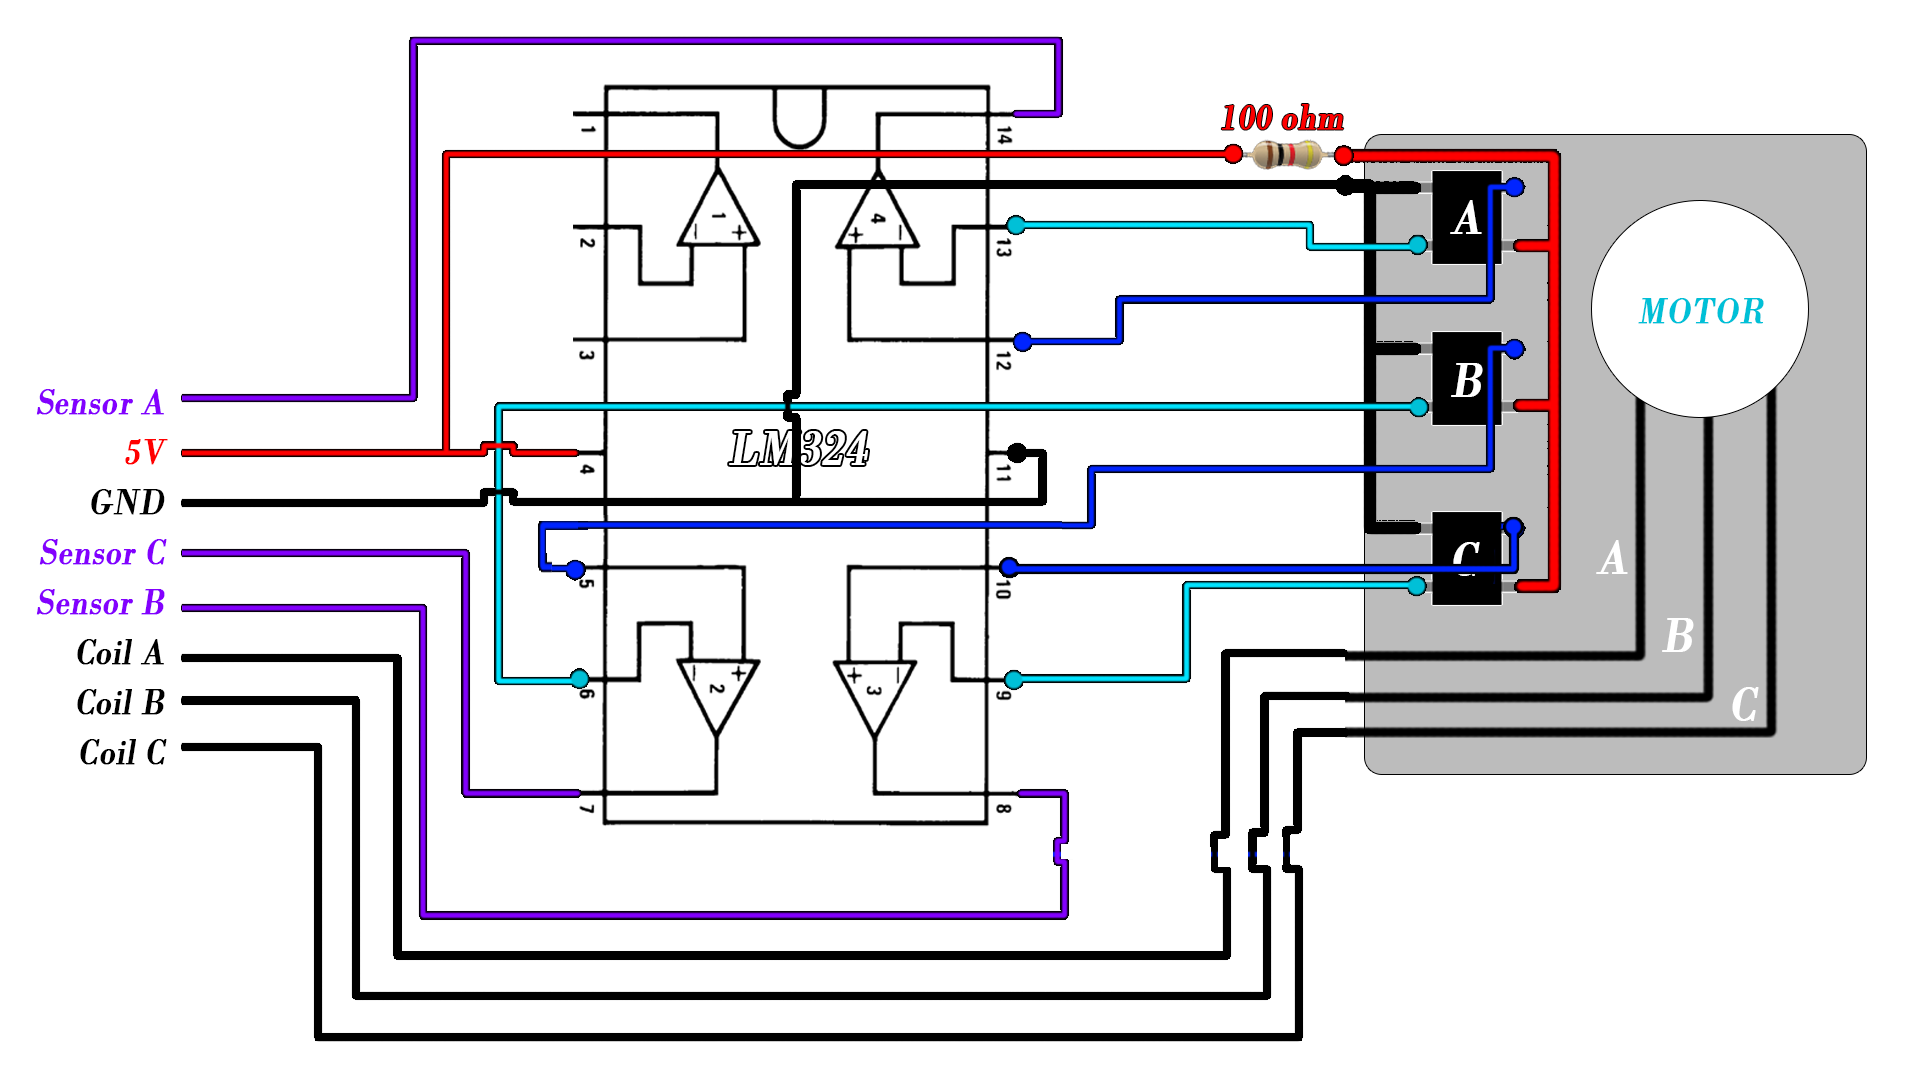 CD brushless schematic hall sensors